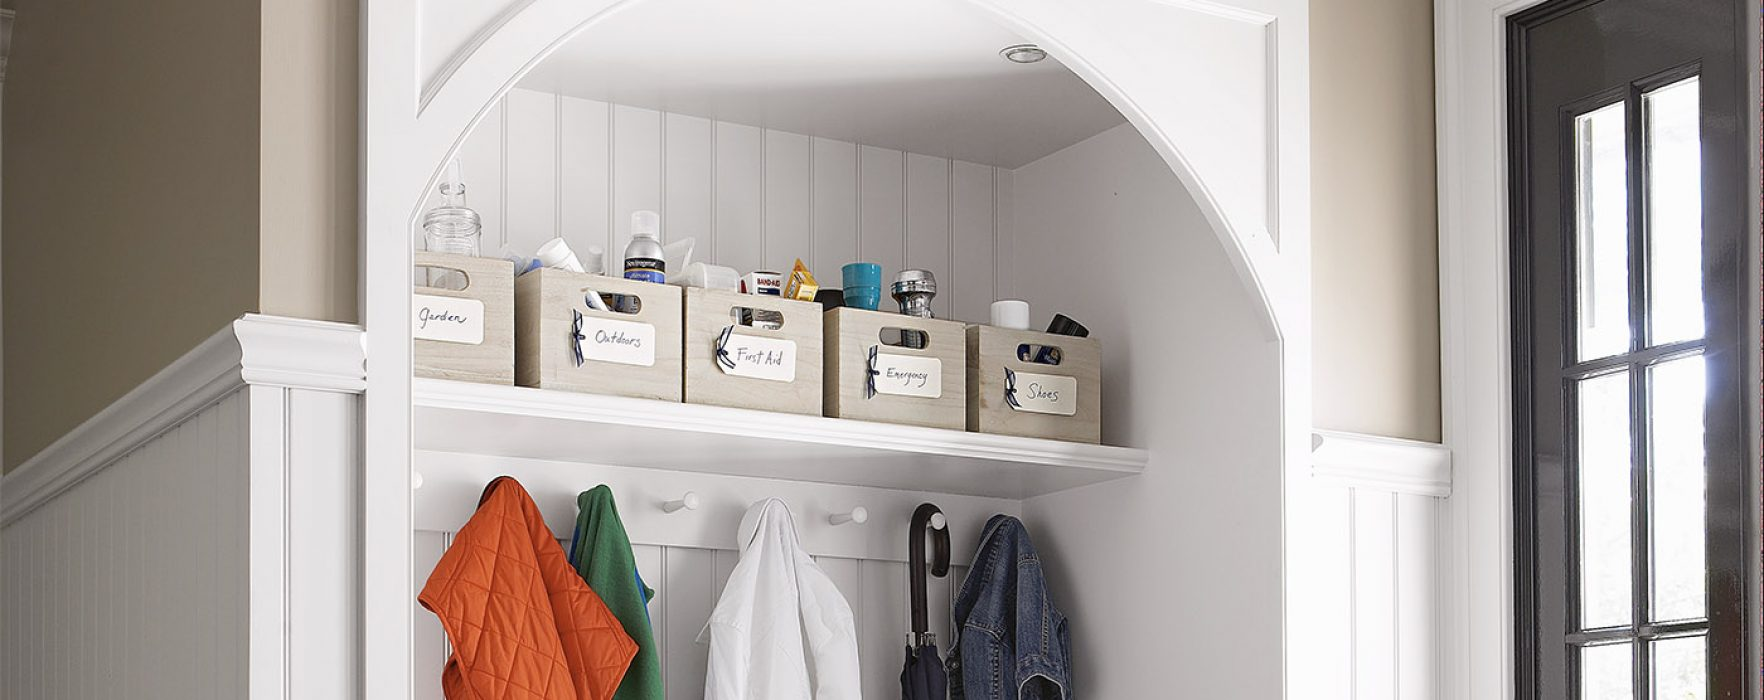 Better Homes And Gardens Mudroom Ideas